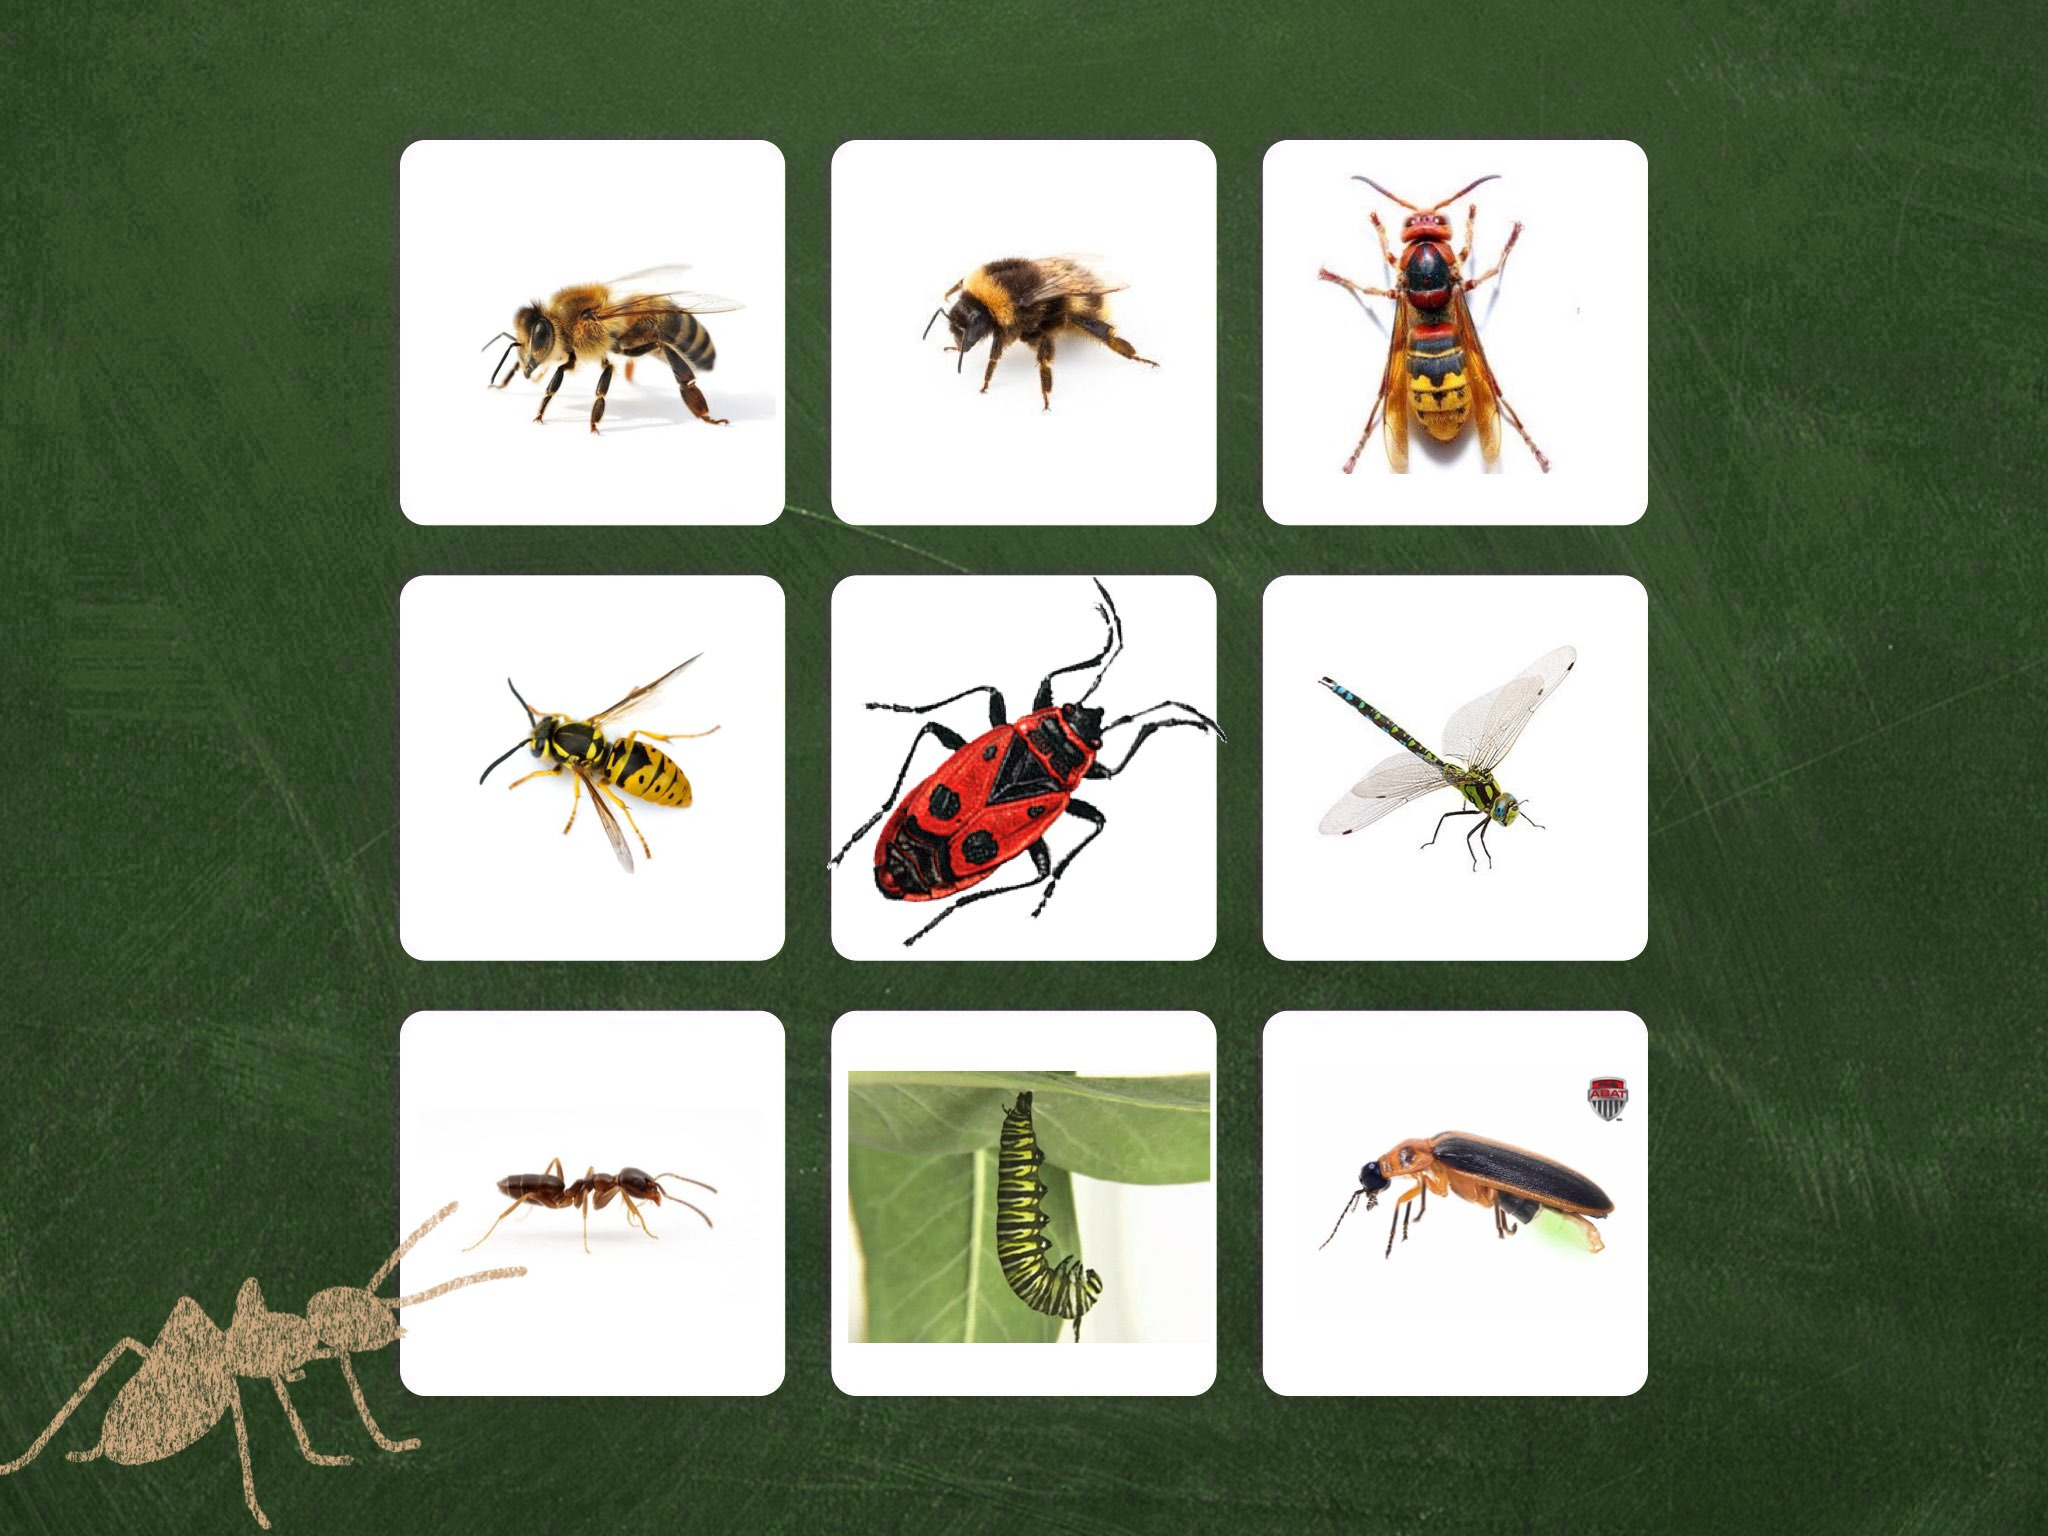 Play Imagier Des Insectes By Judy Lc - On Tinytap tout Imagier Insectes